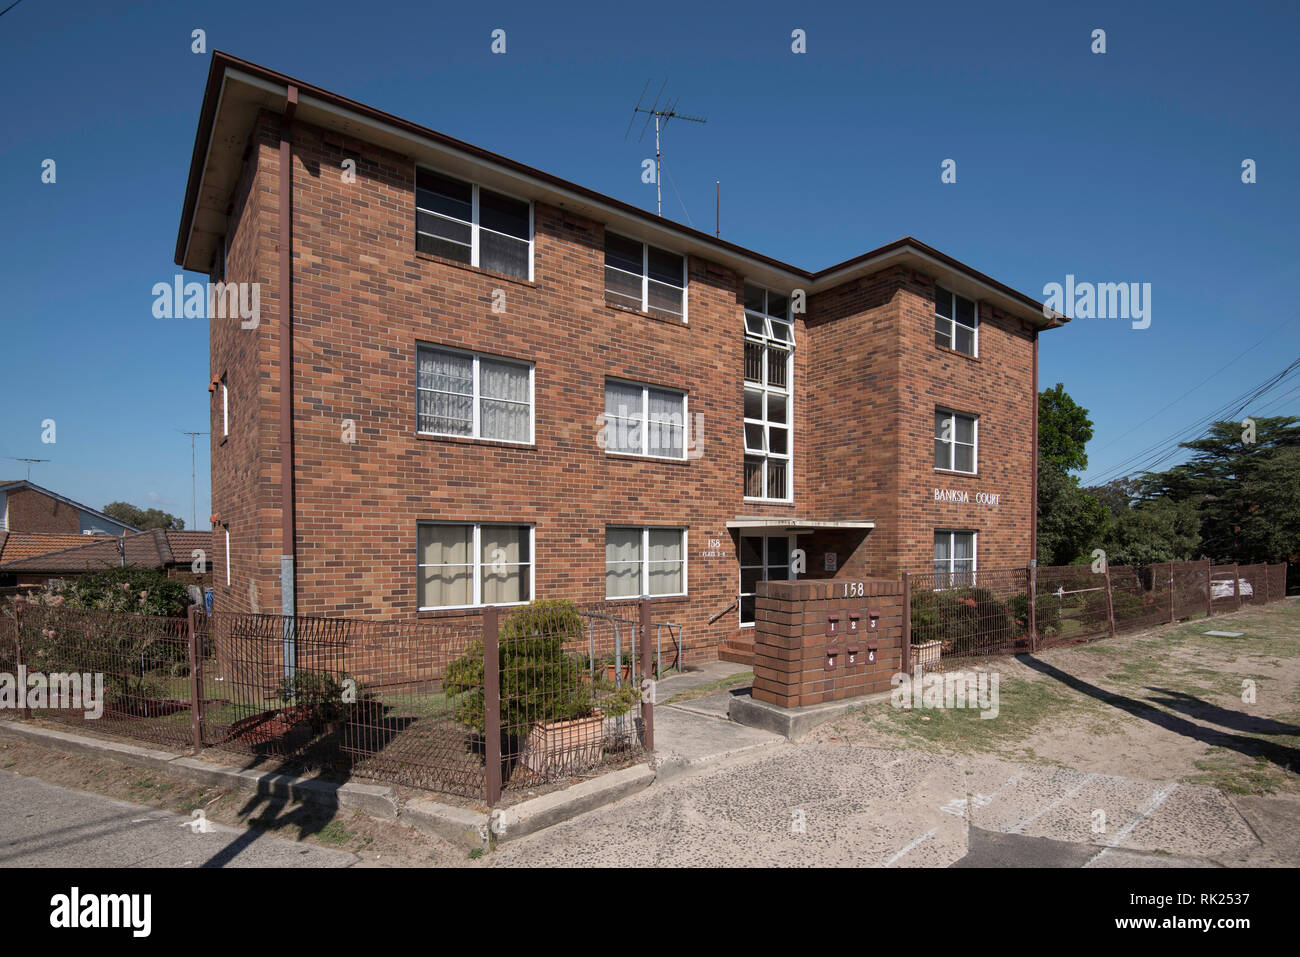 An early Sydney 3 level apartment, home-unit block (aka Flats) named Banksia. Built in Austere simple style with double brick and timber no balconies. - Stock Image